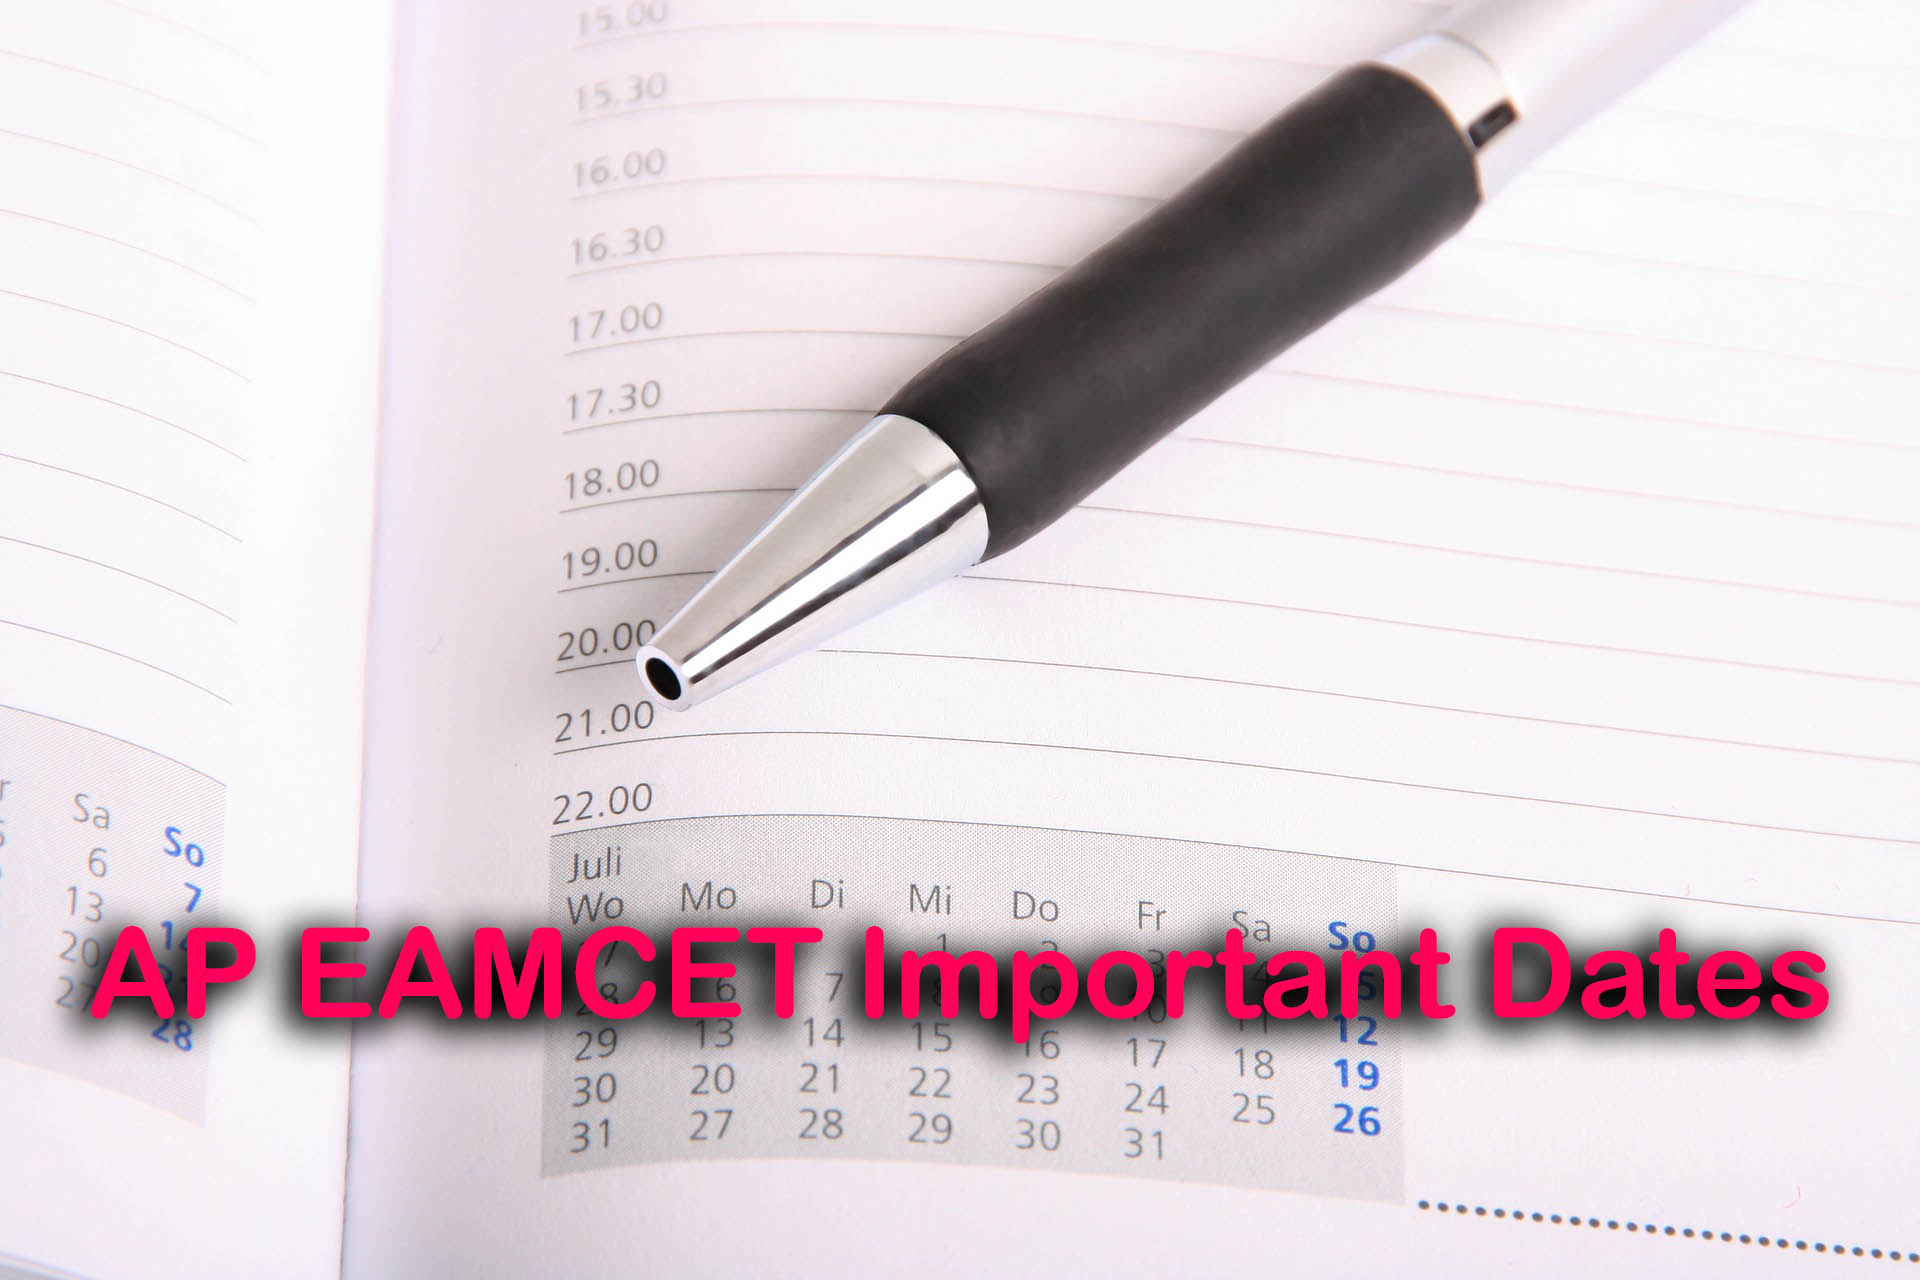 AP EAMCET Important Dates